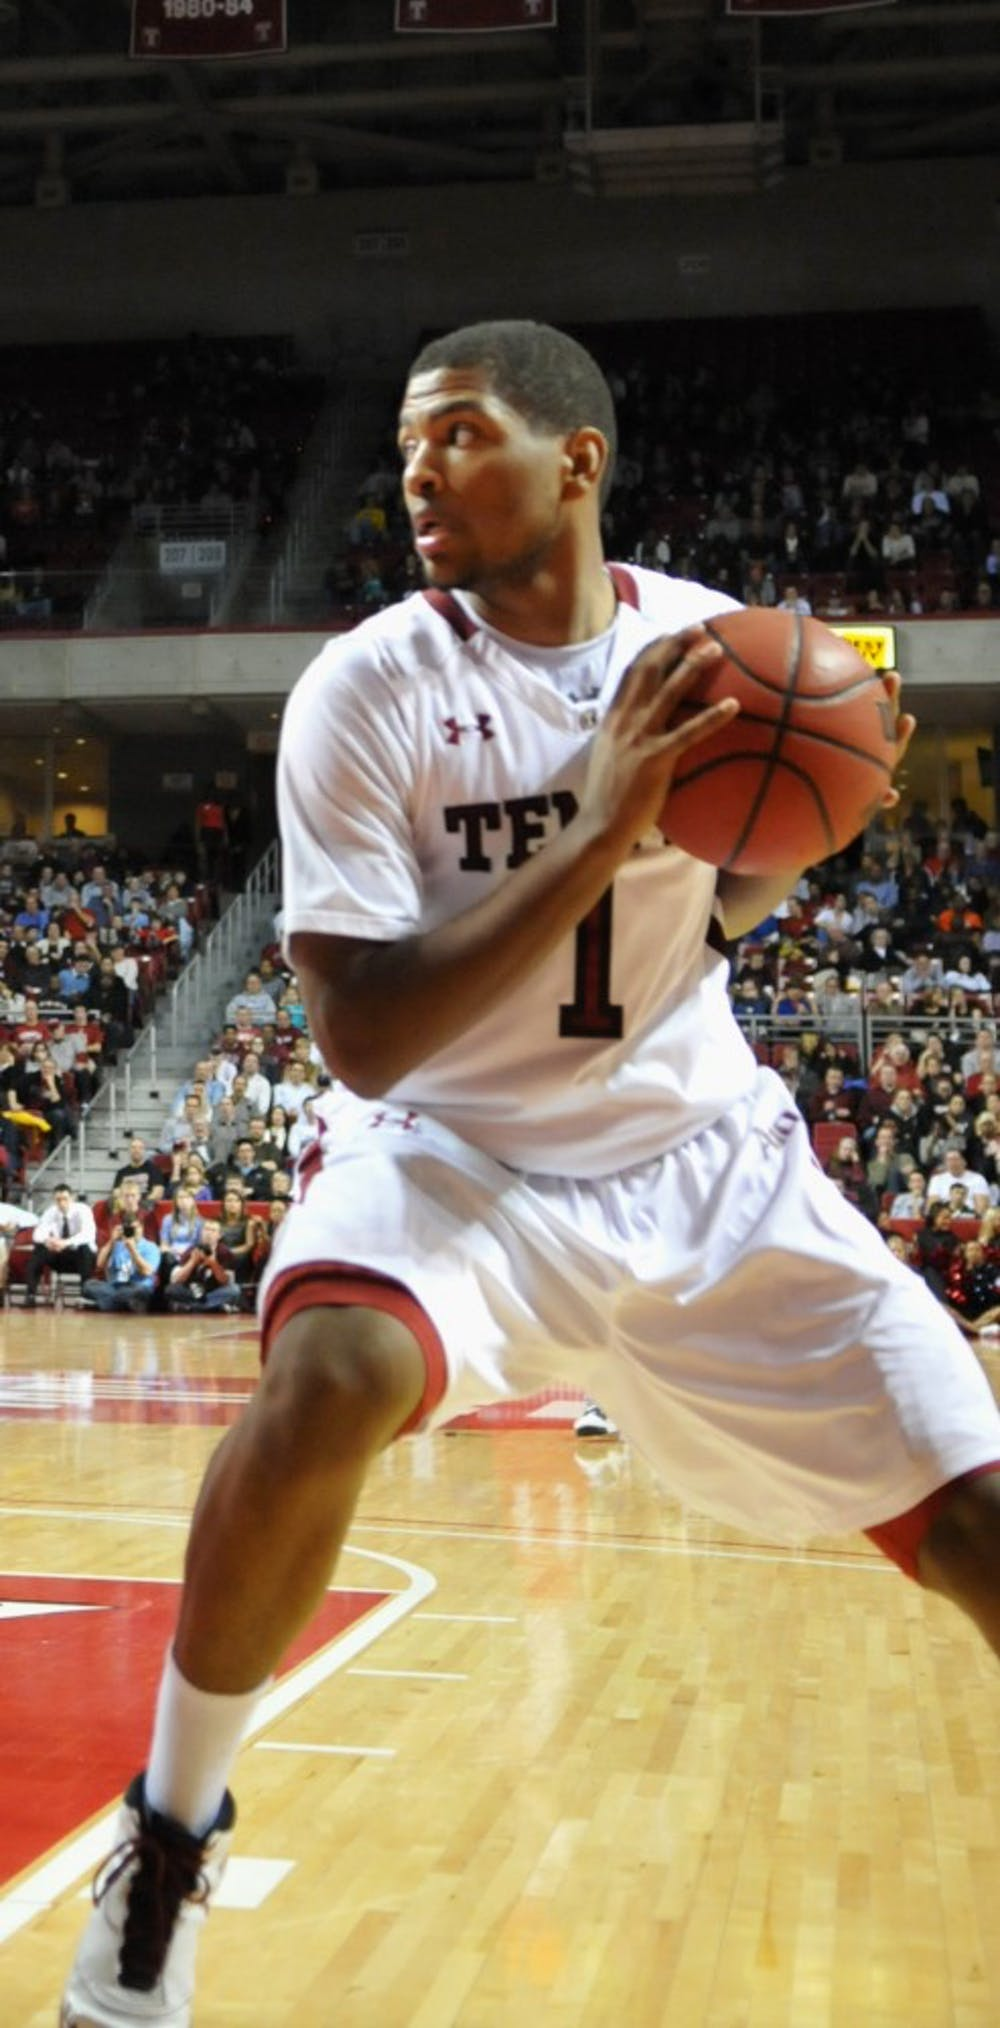 MHoops v Temple at TemplePenn lost 73-56